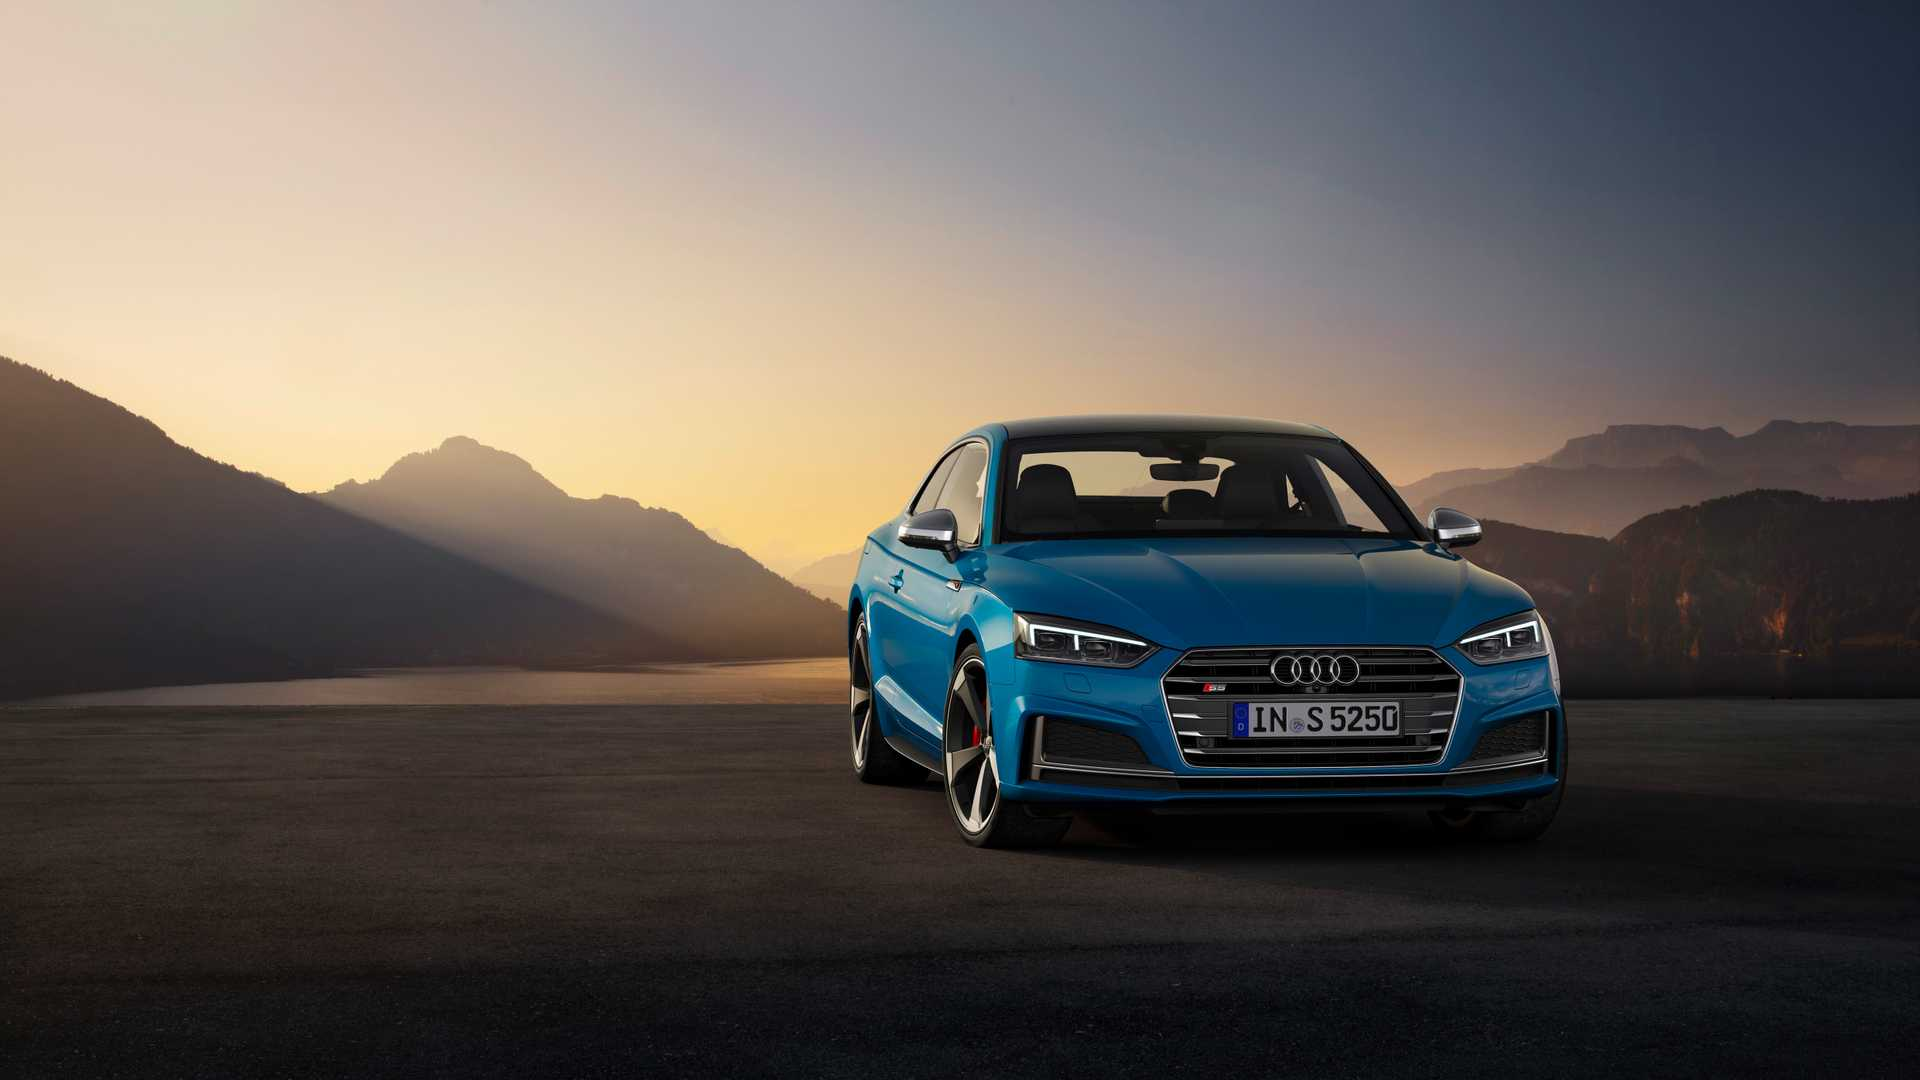 2019 Audi S5 Coupé TDI Front Wallpapers (14)